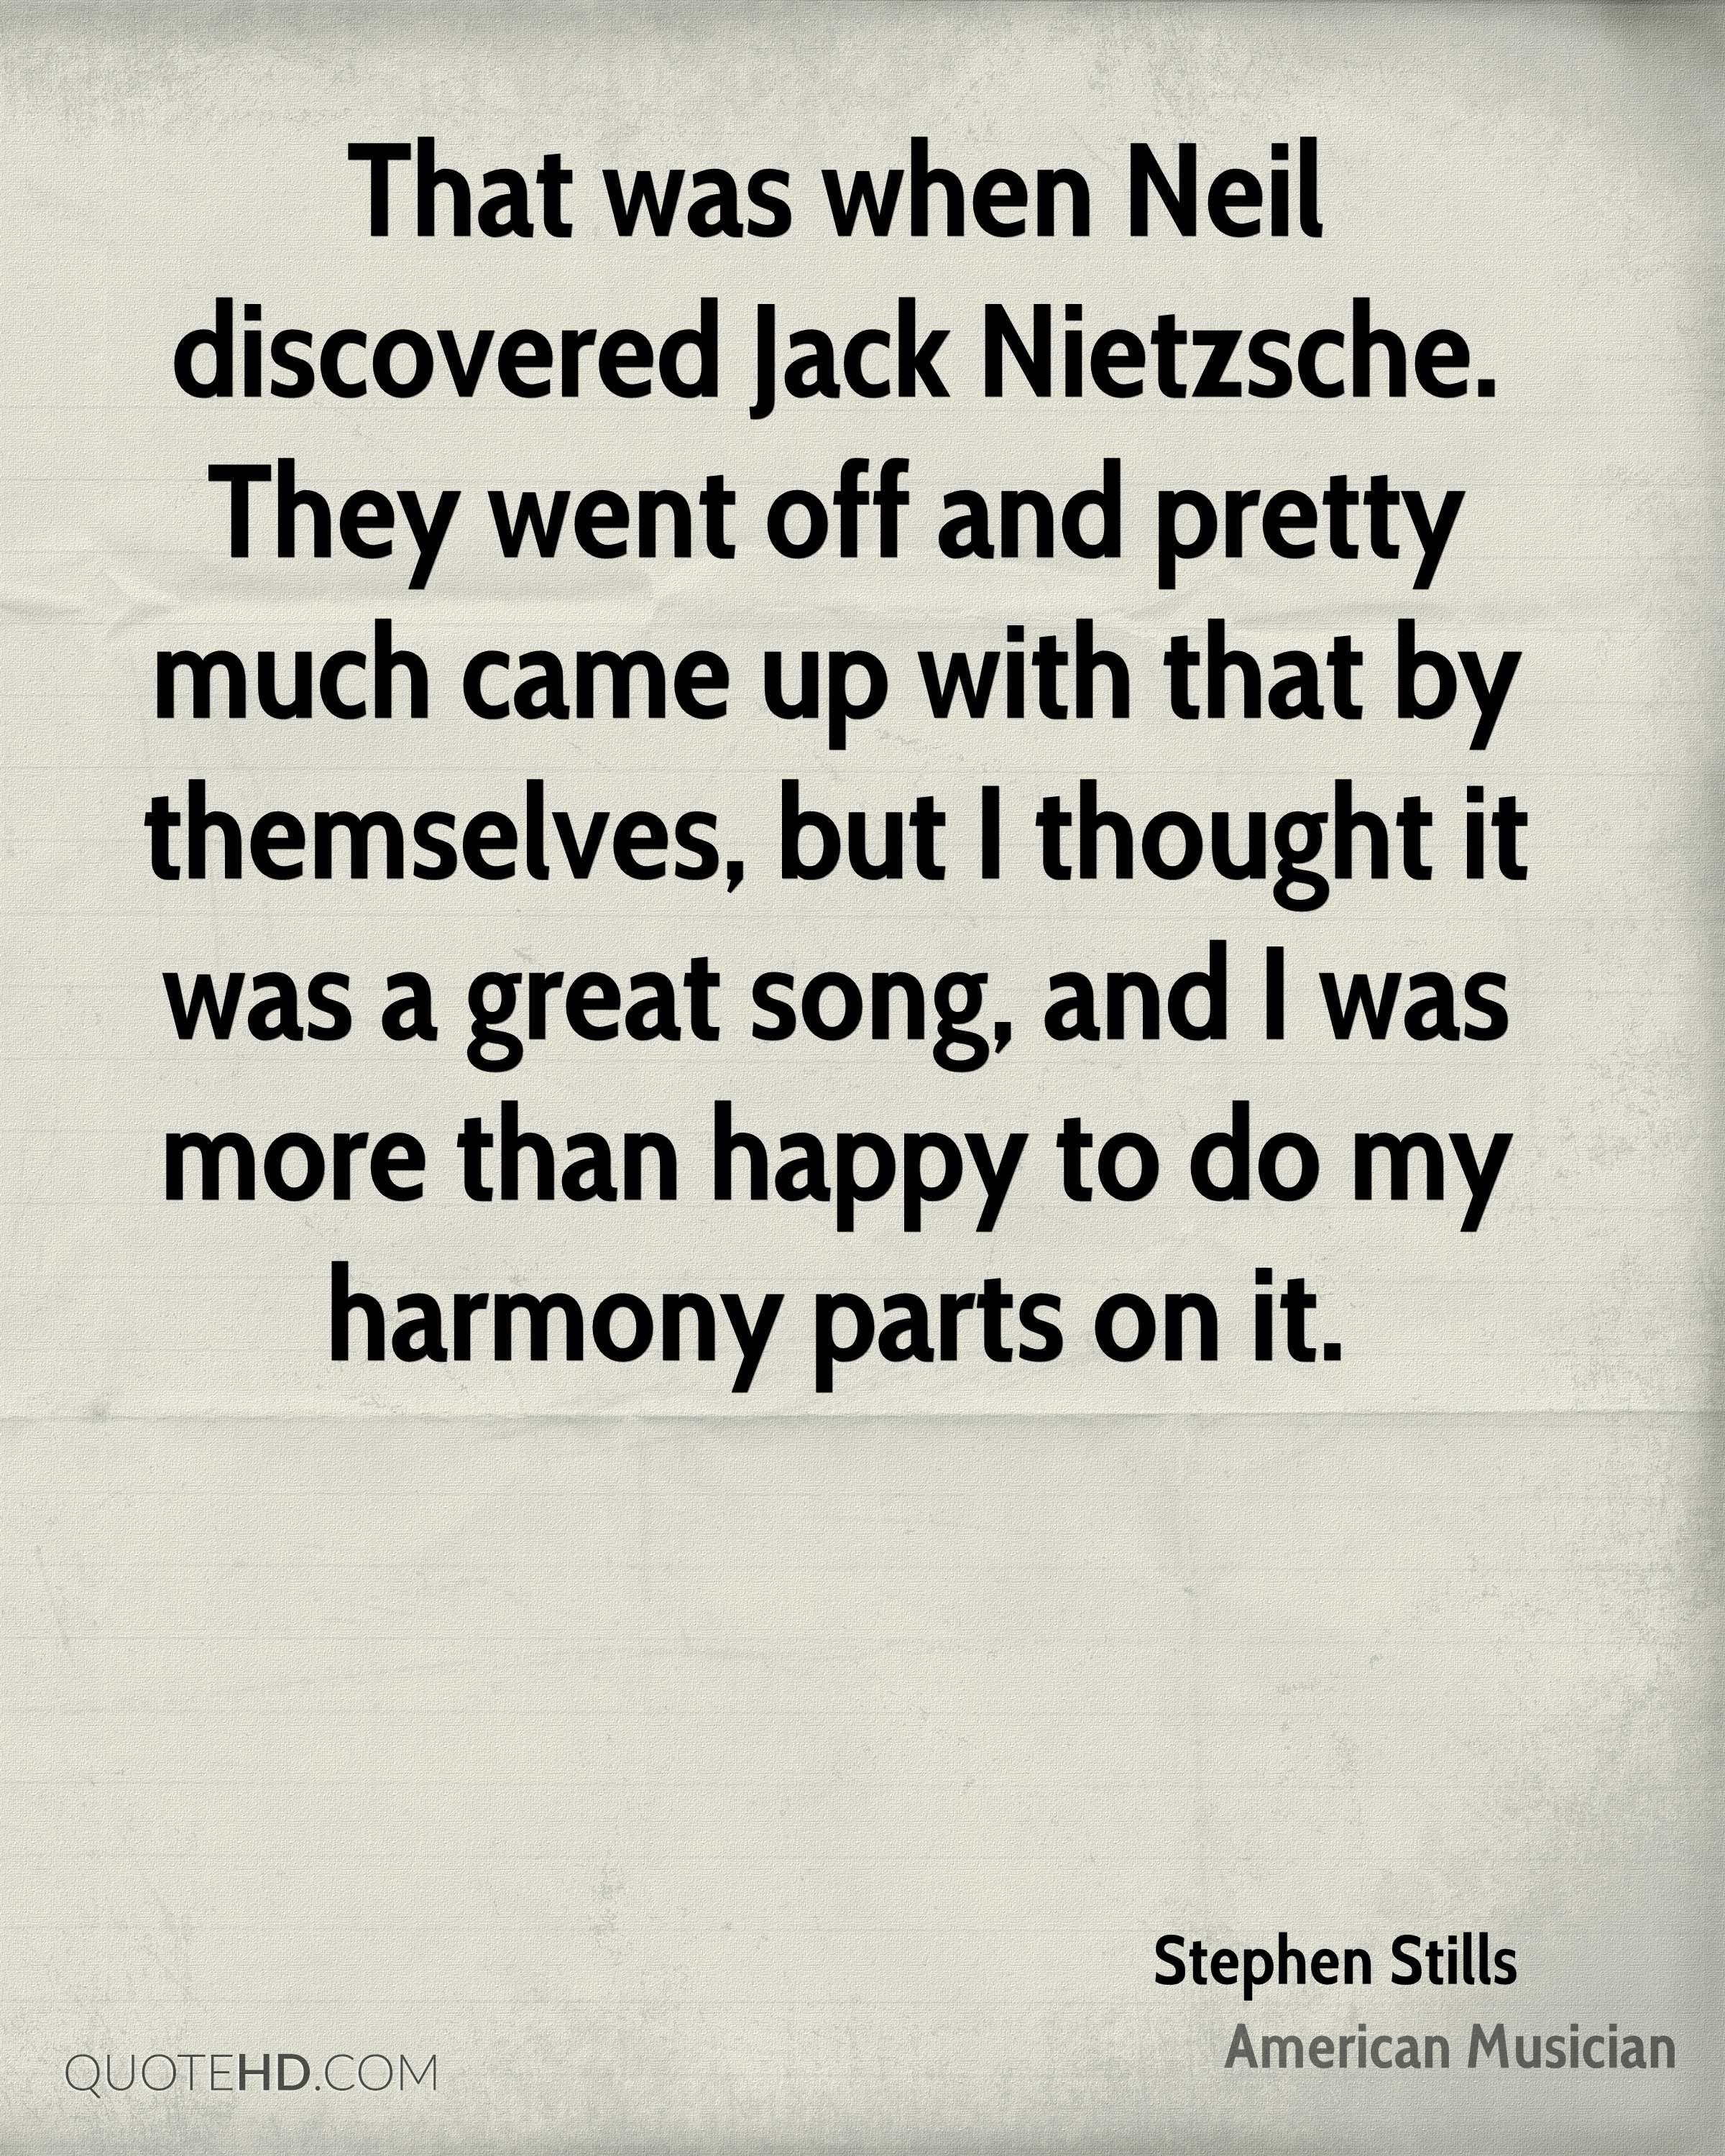 That was when Neil discovered Jack Nietzsche. They went off and pretty much came up with that by themselves, but I thought it was a great song, and I was more than happy to do my harmony parts on it.